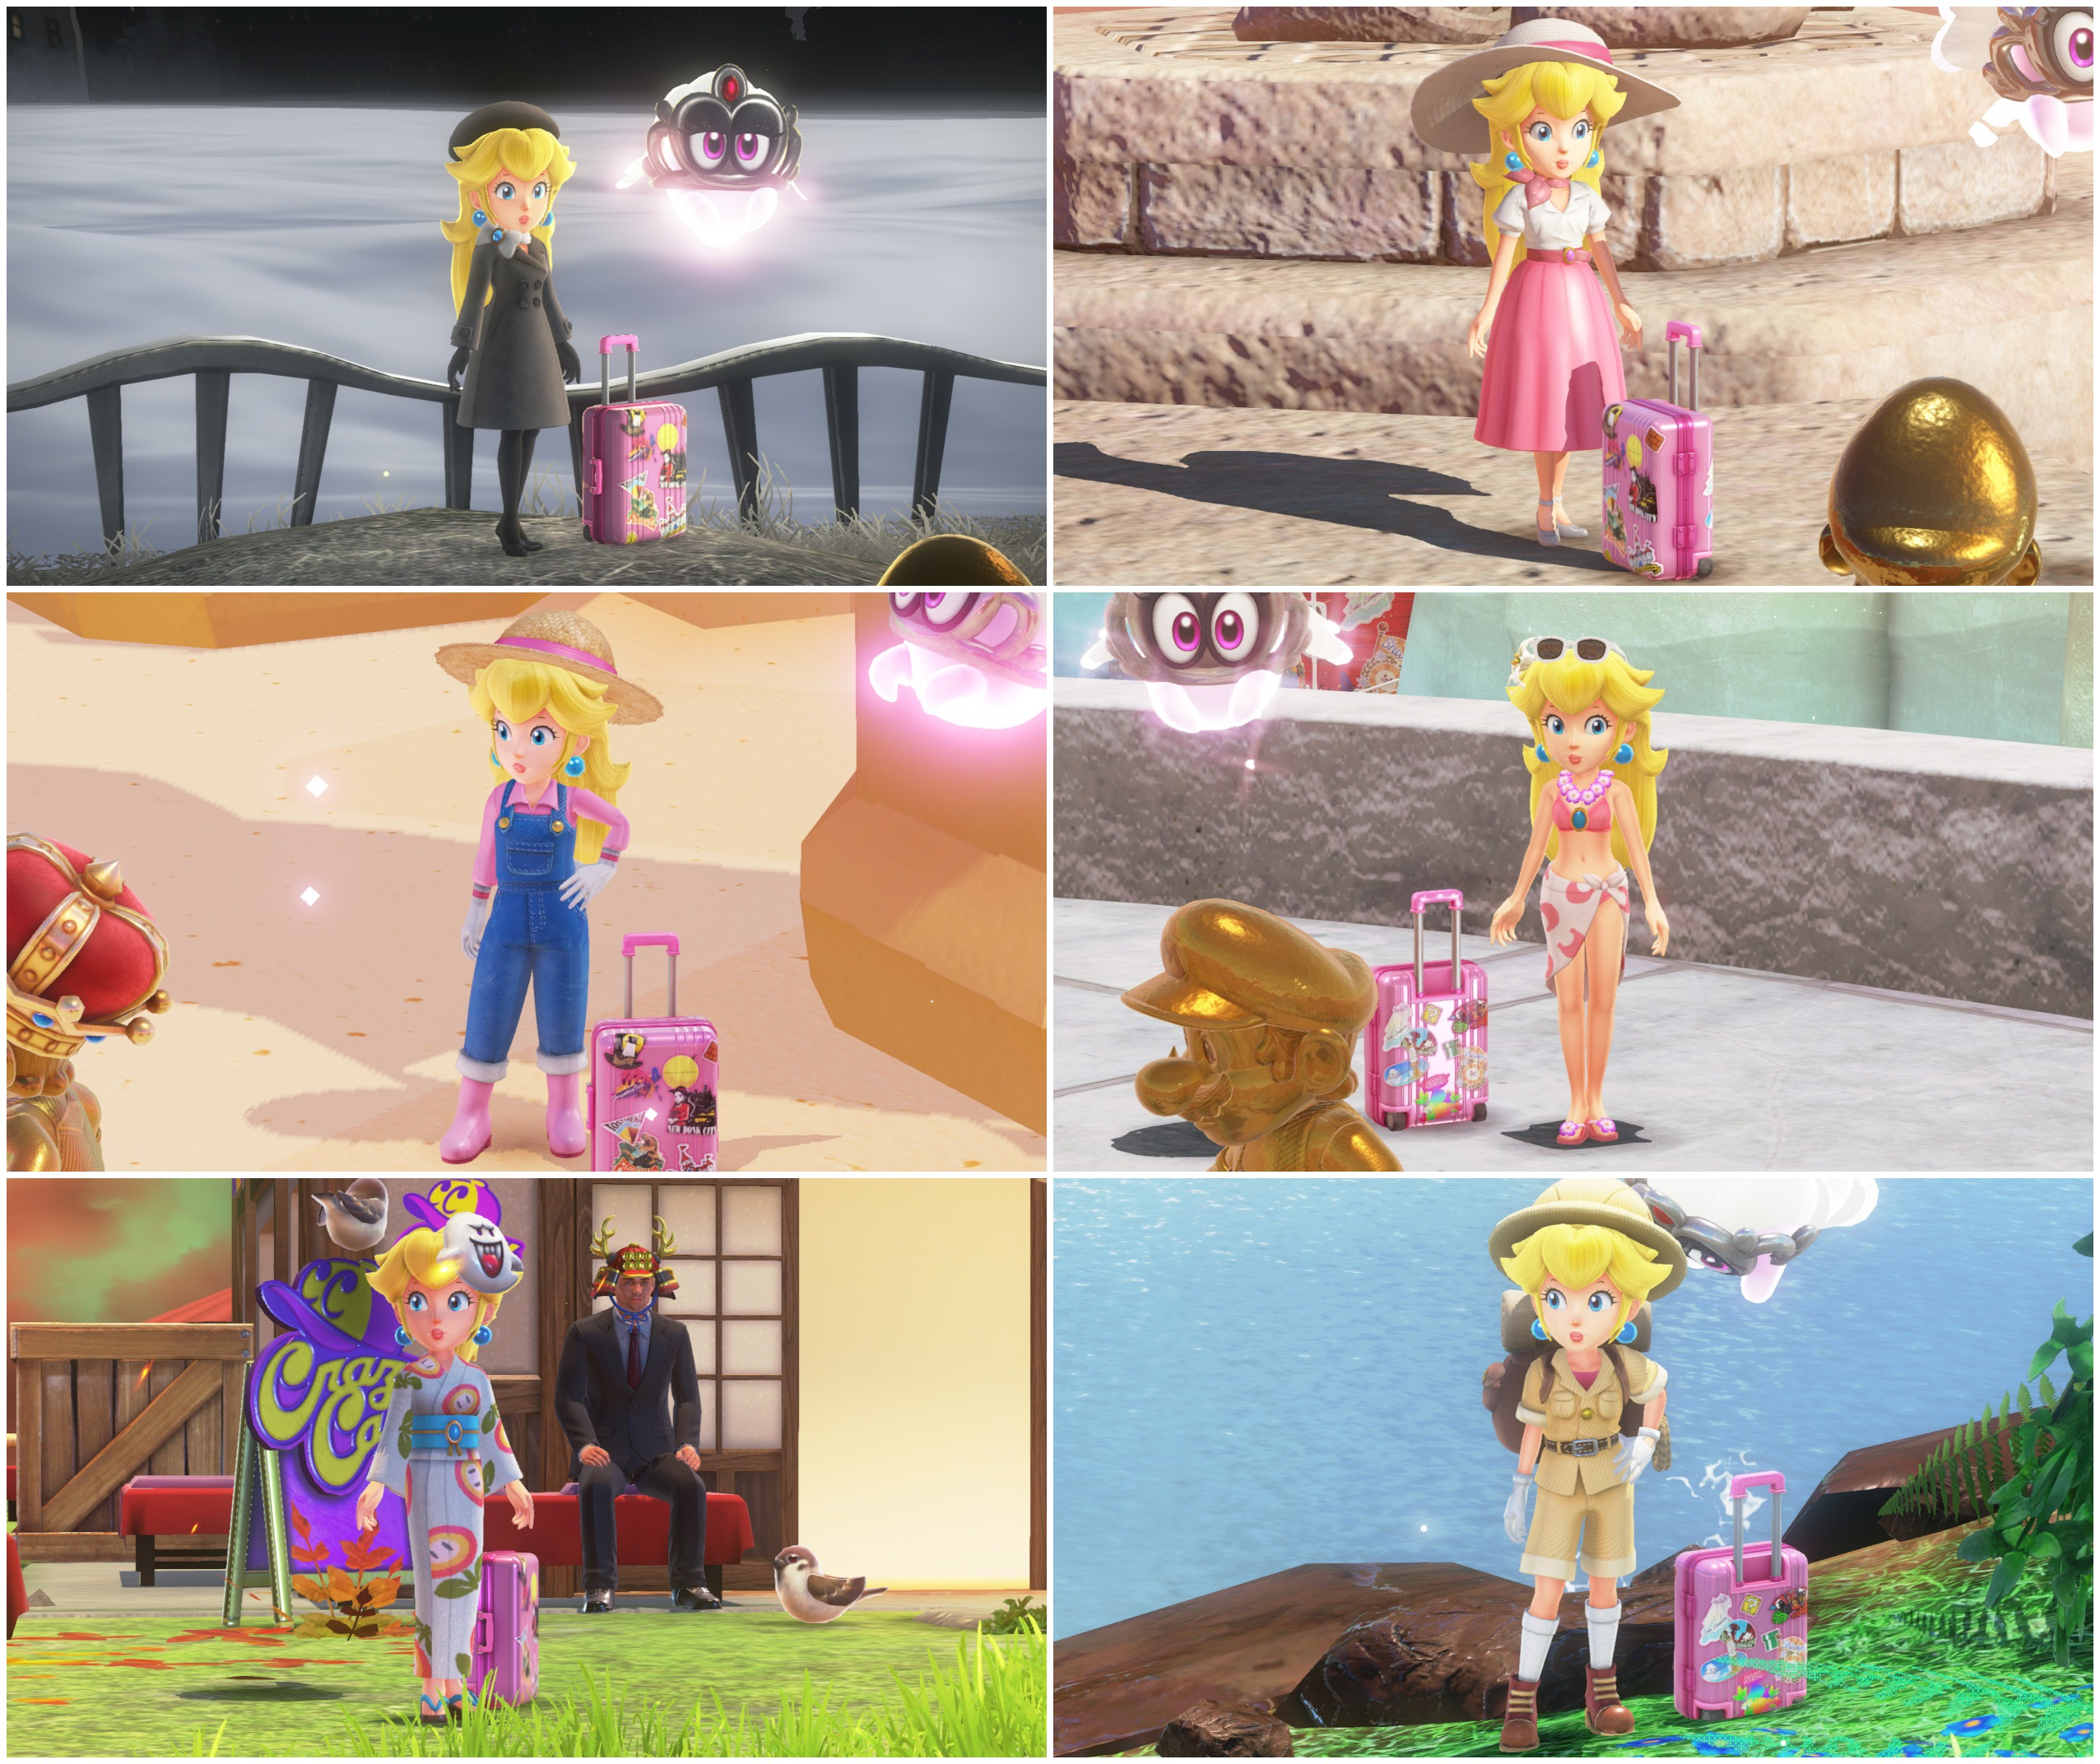 Princess Peach Odyssey Alternate Outfits By Pinkythepink On Deviantart